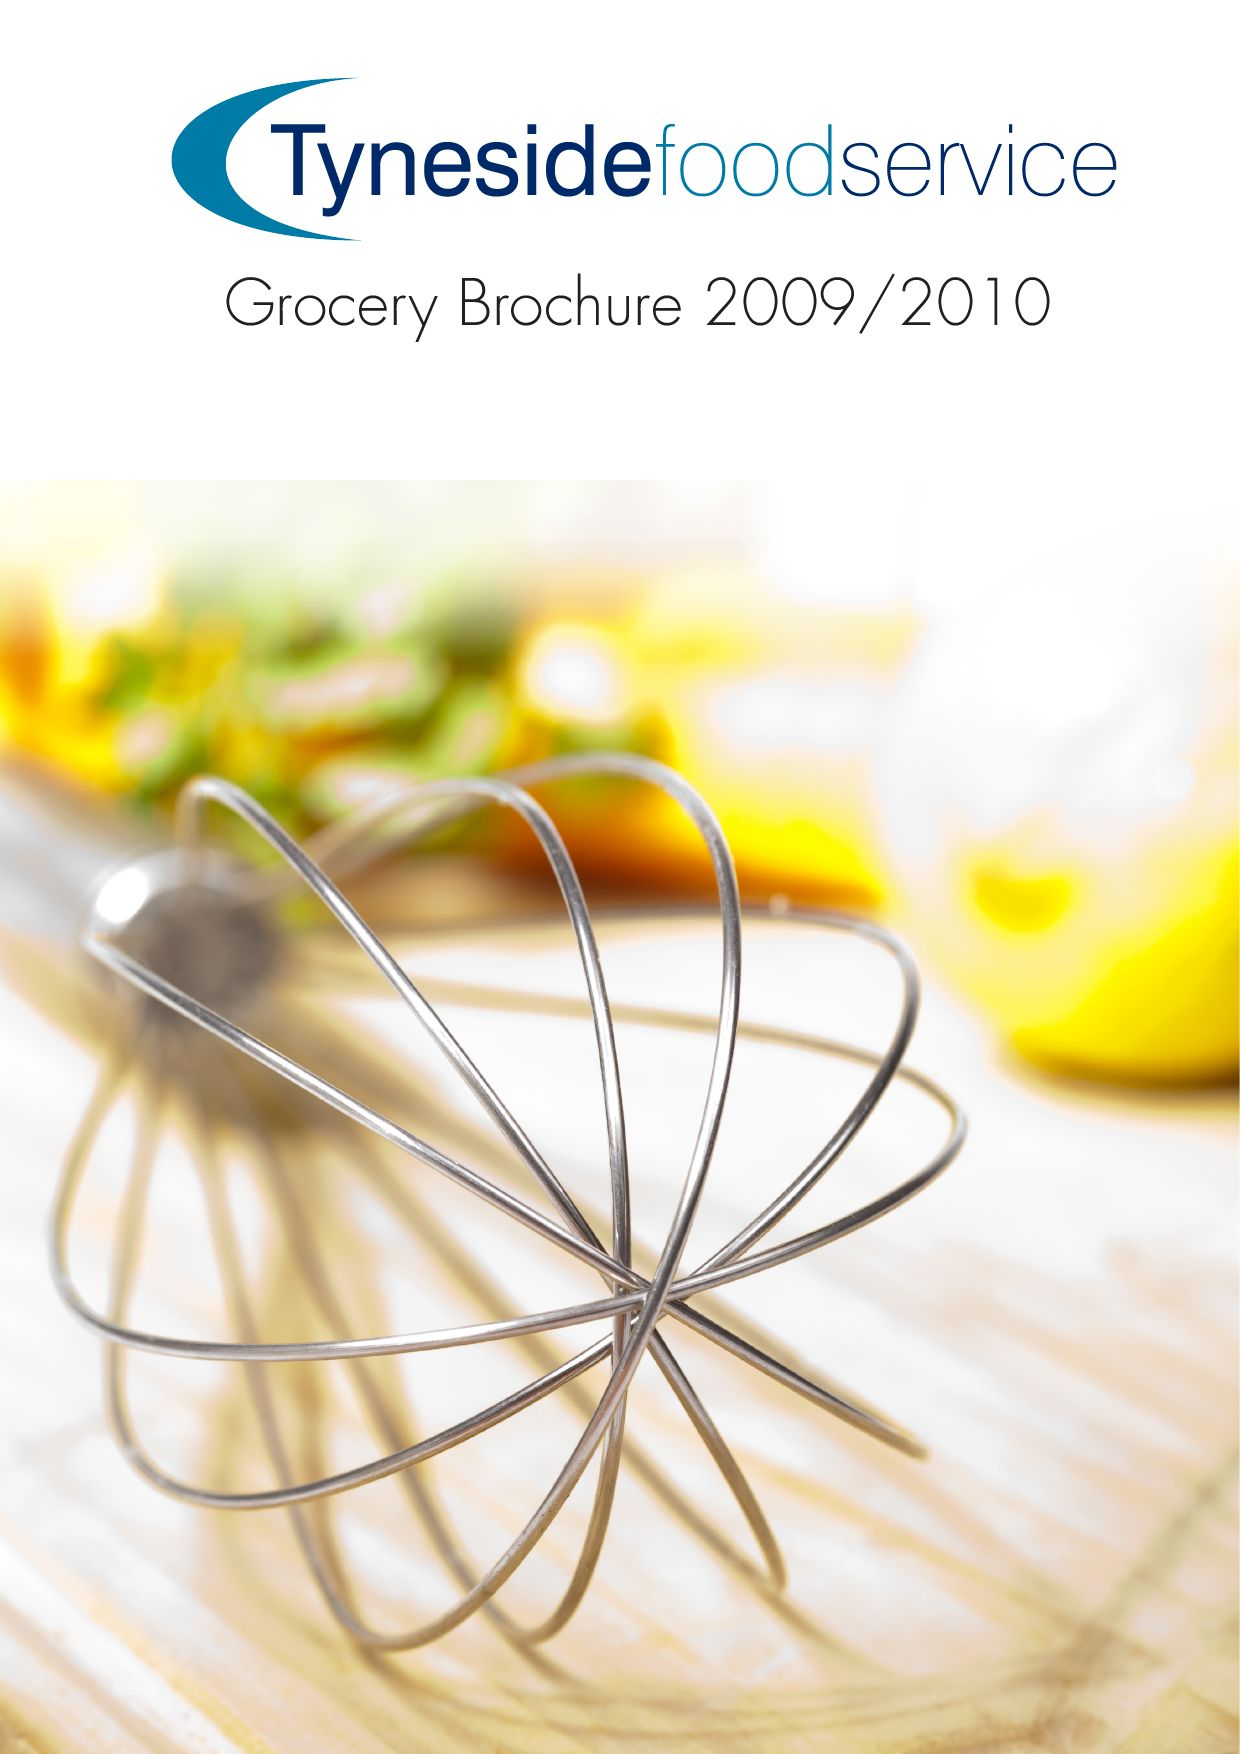 Tyneside Foodservice Grocery Brochure aw09 by Infotech 24 7 Limited